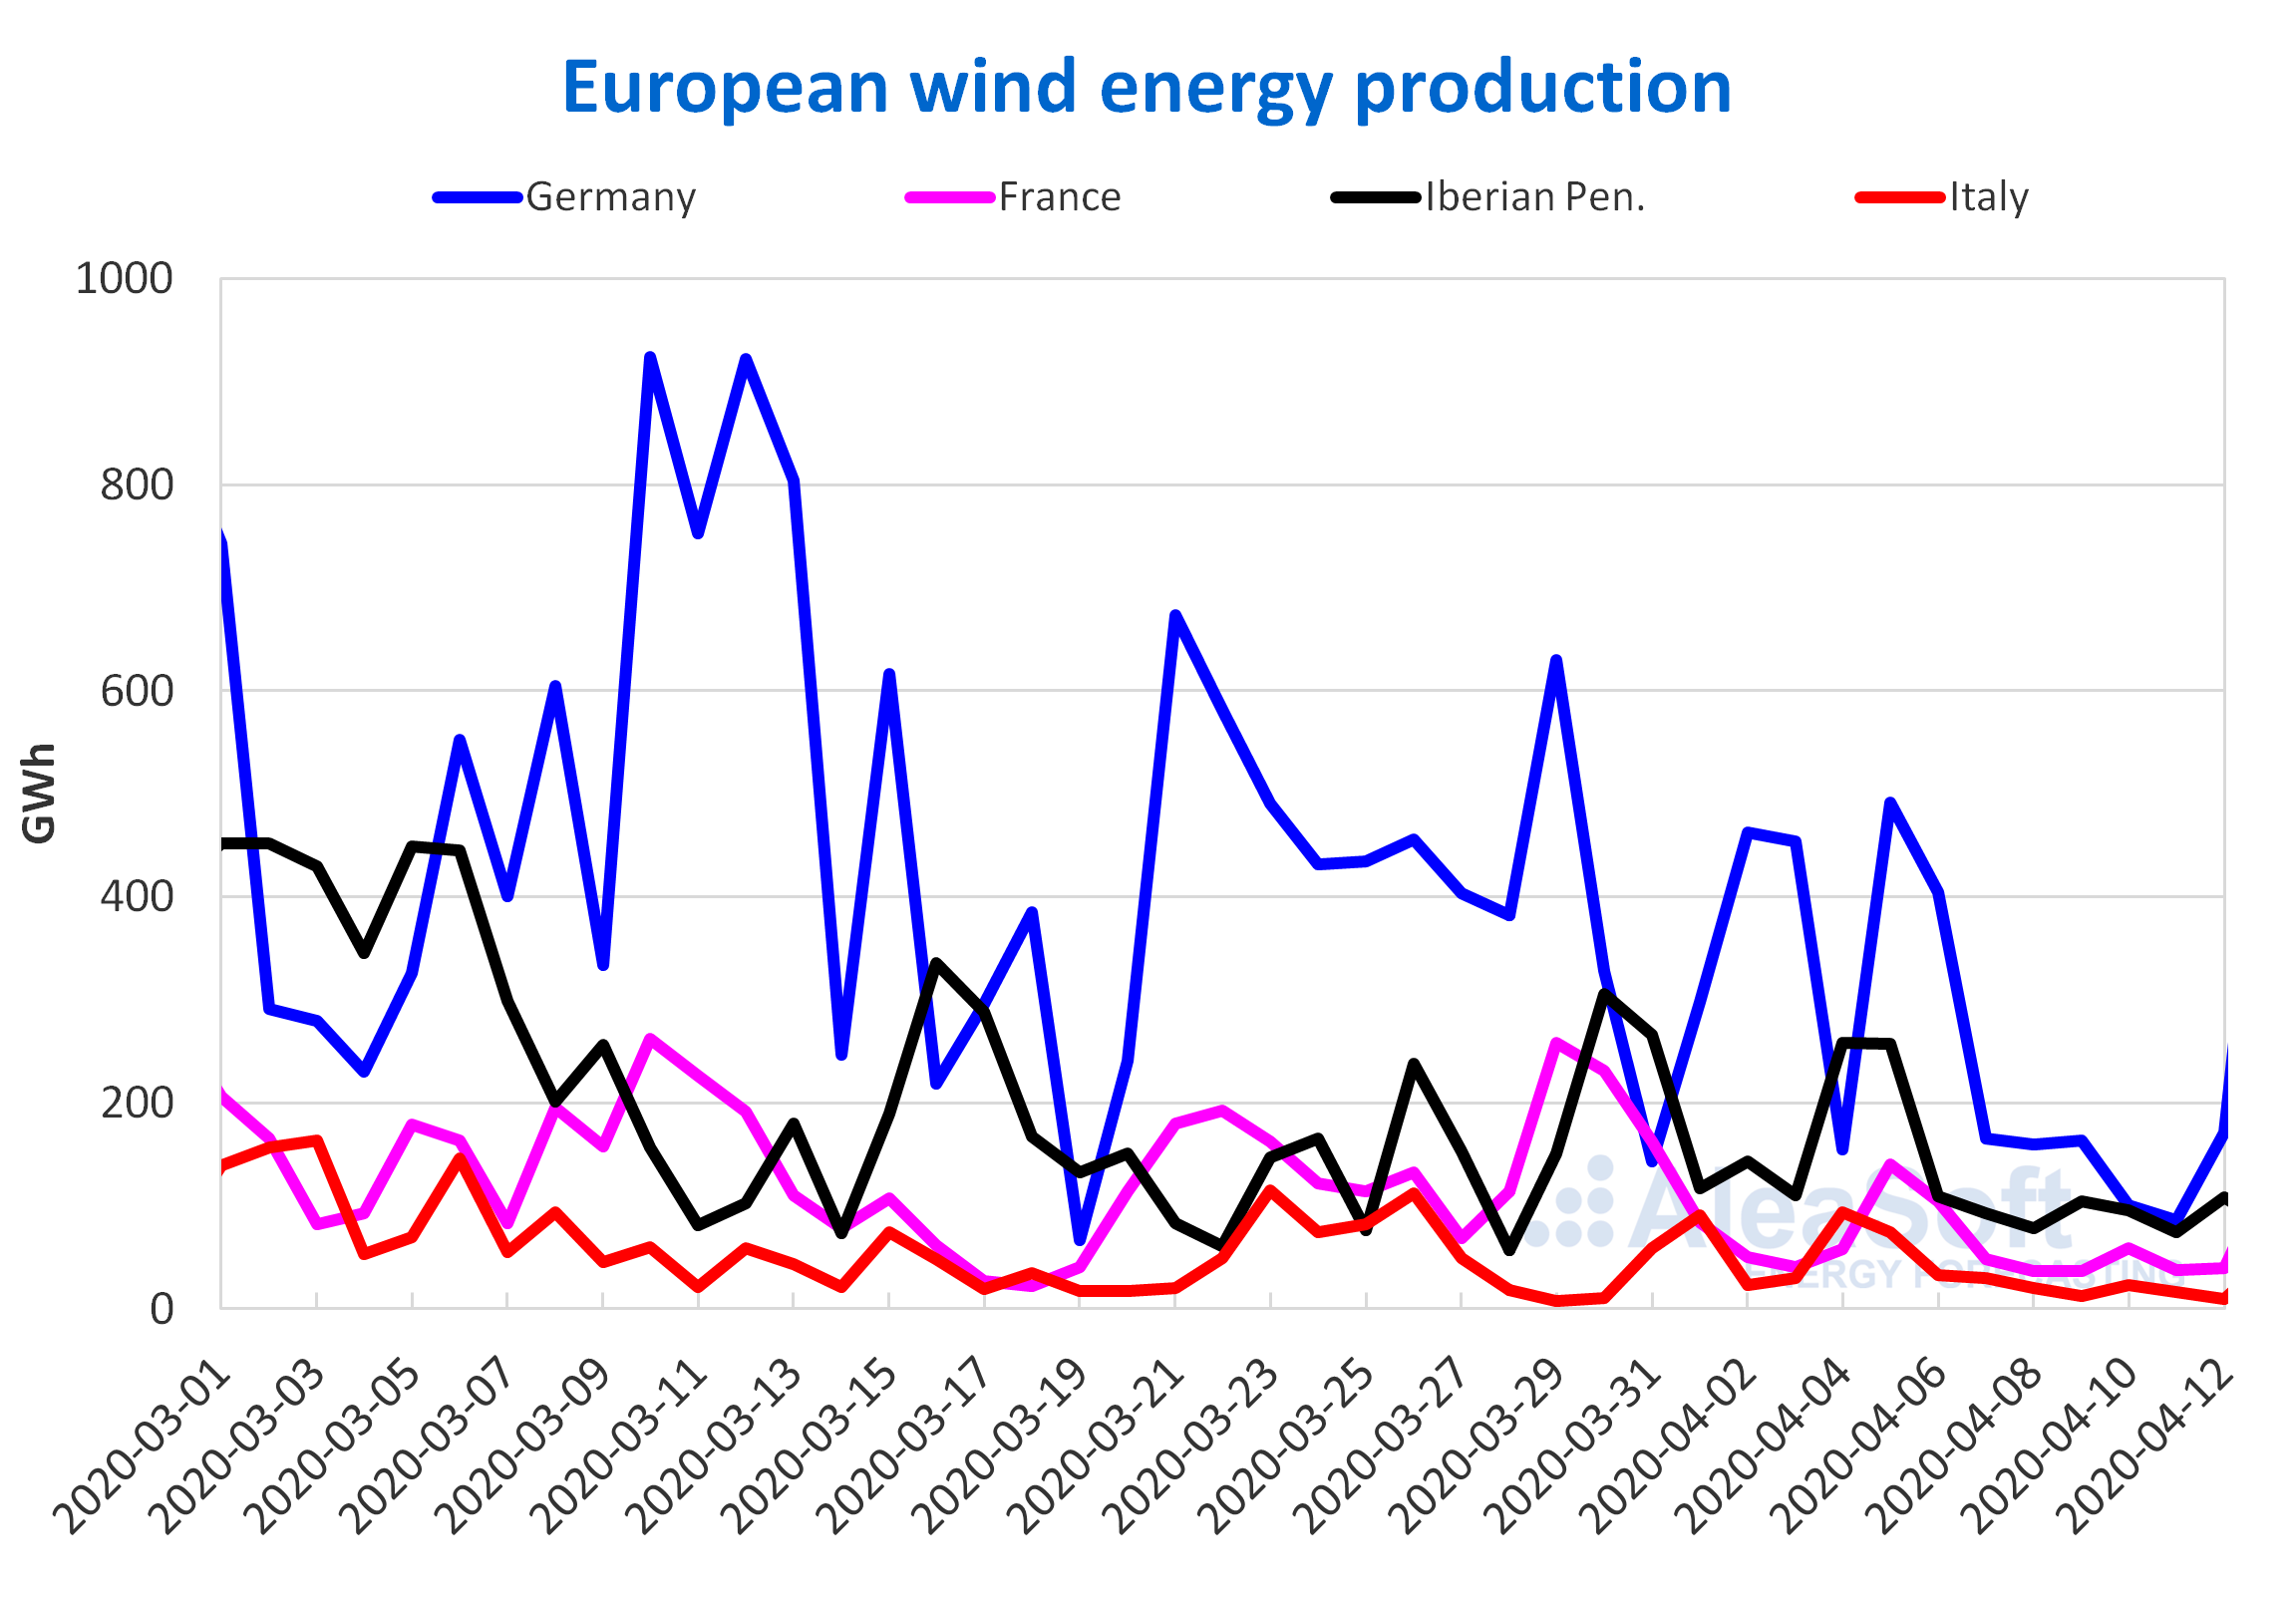 gy produc- tion electricity Europe